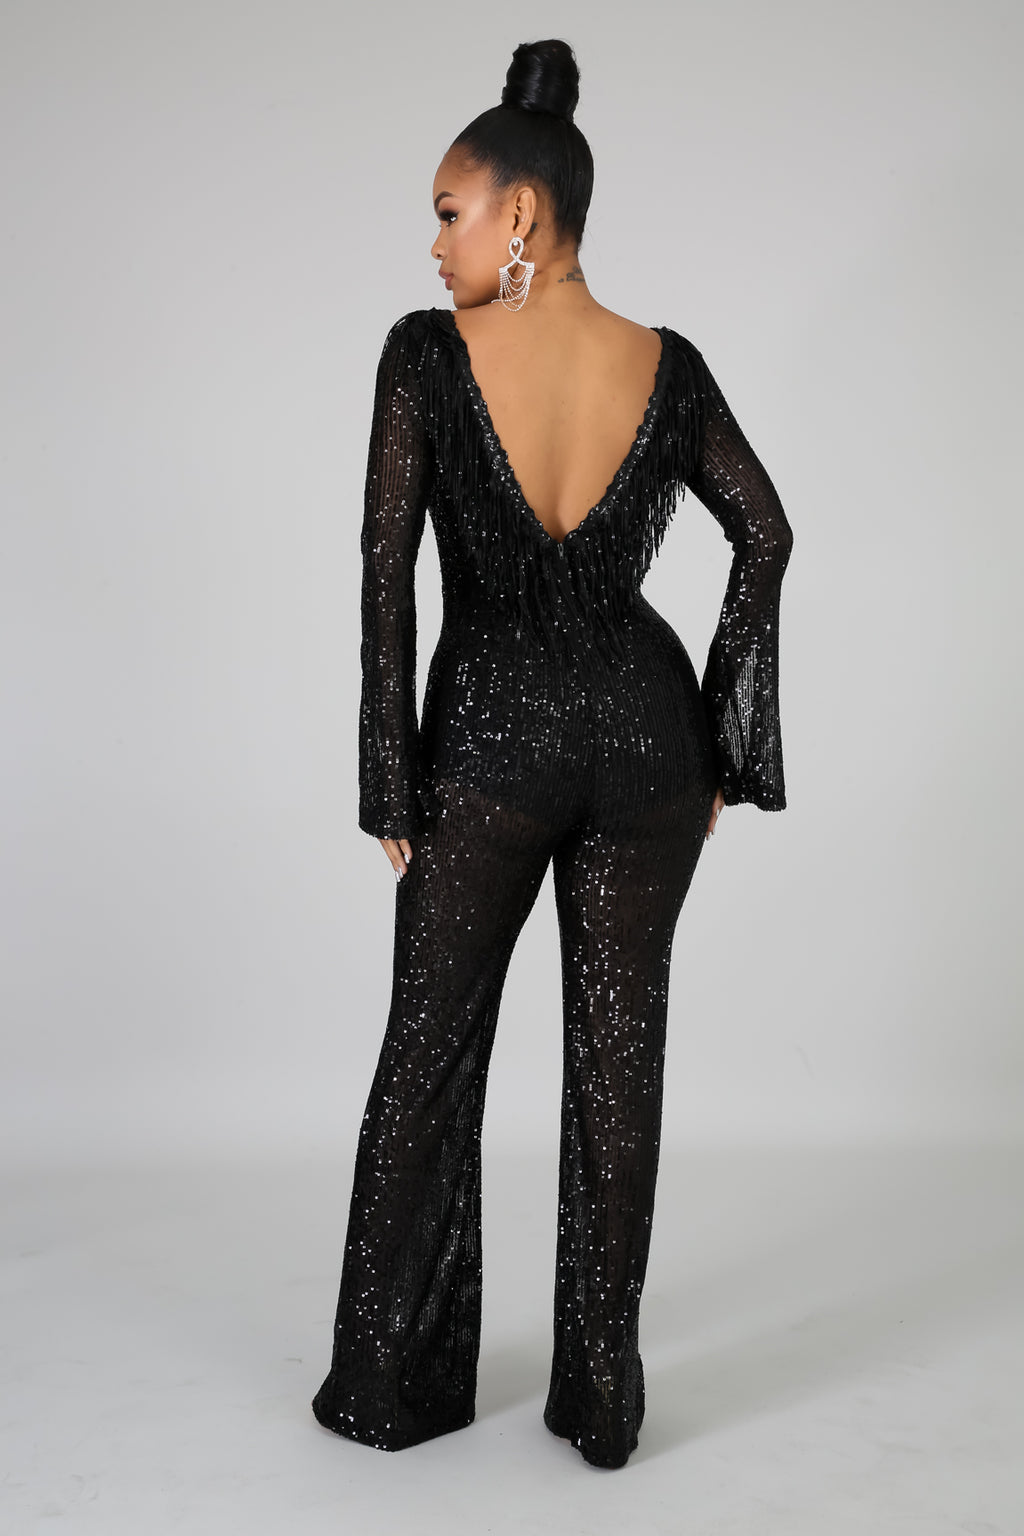 Dropping Hints Jumpsuit | GitiOnline